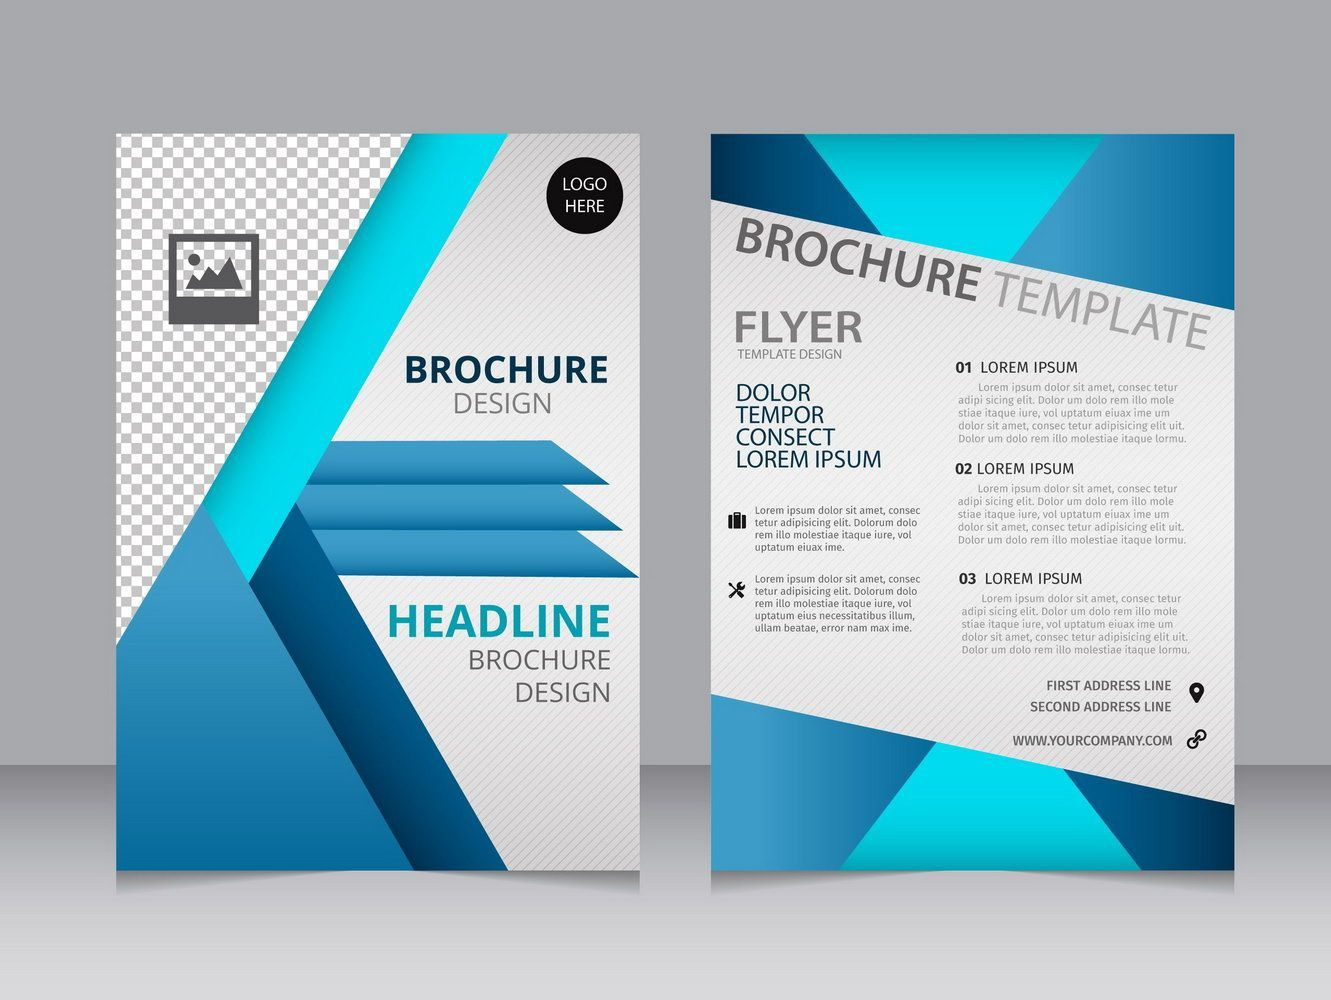 003 Impressive Free Download Flyer Template Concept  Photoshop For Microsoft Word Downloadable PublisherFull